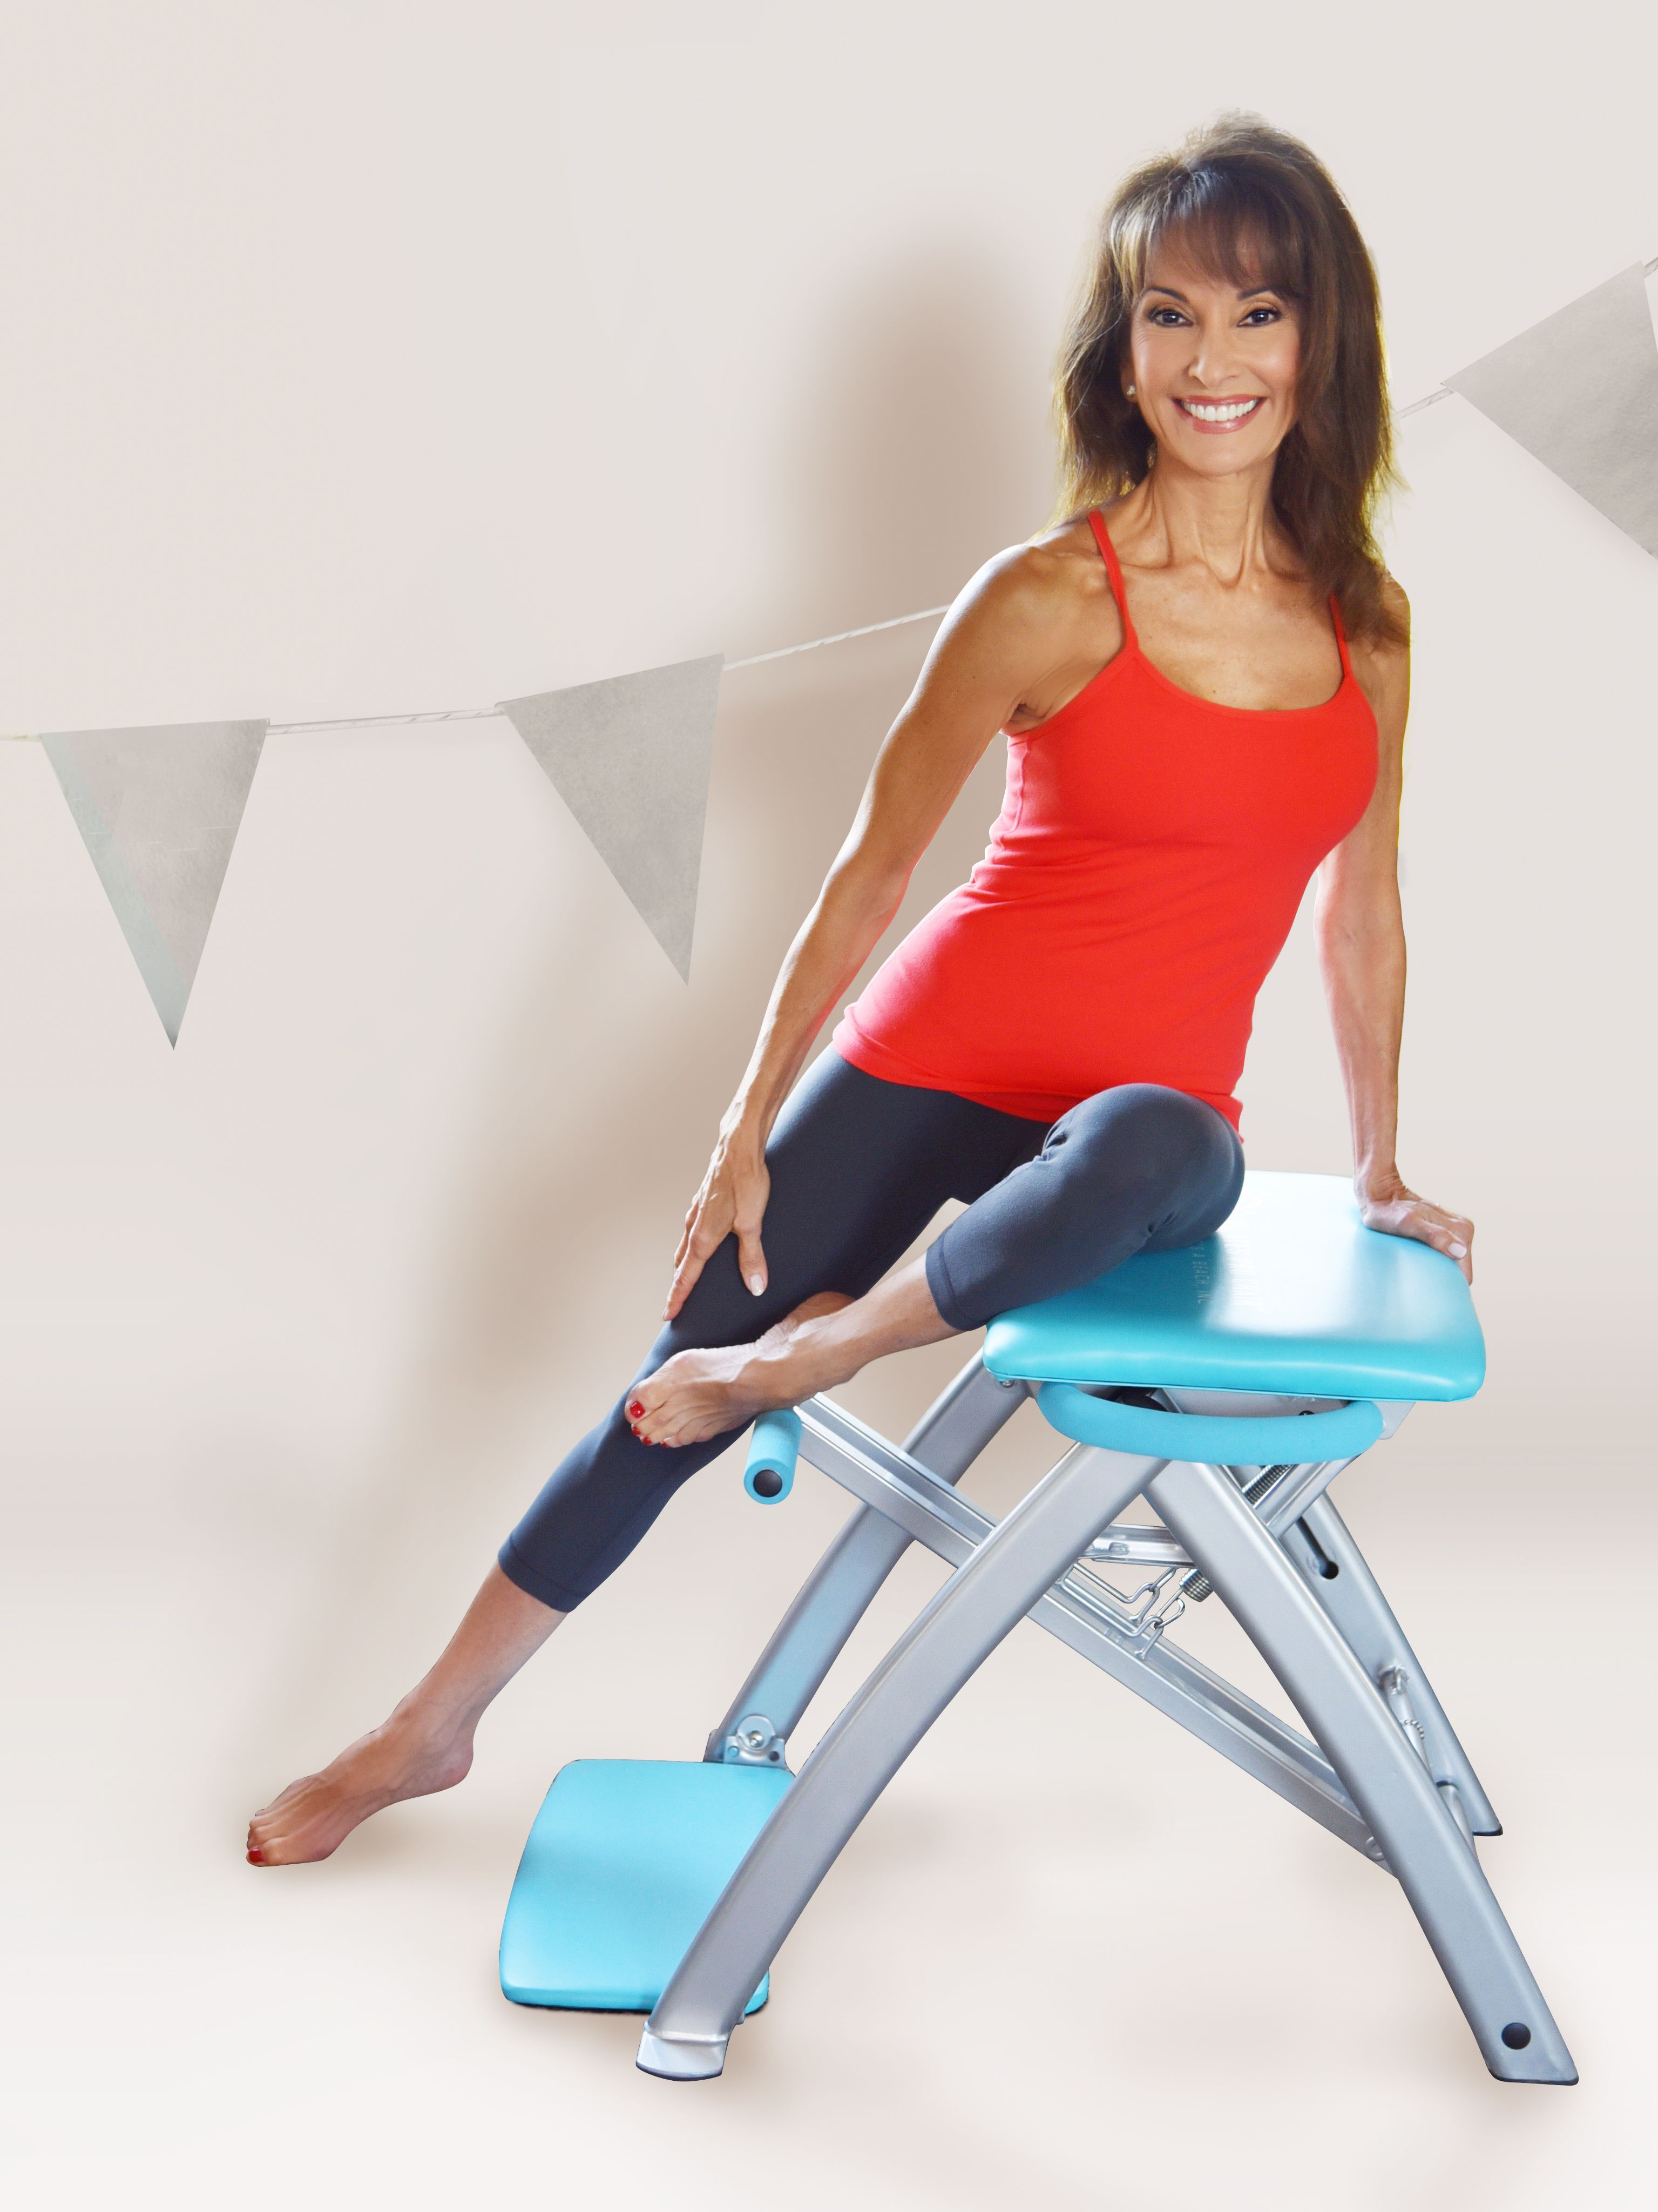 New year New You image by TSC New year new you, Pilates